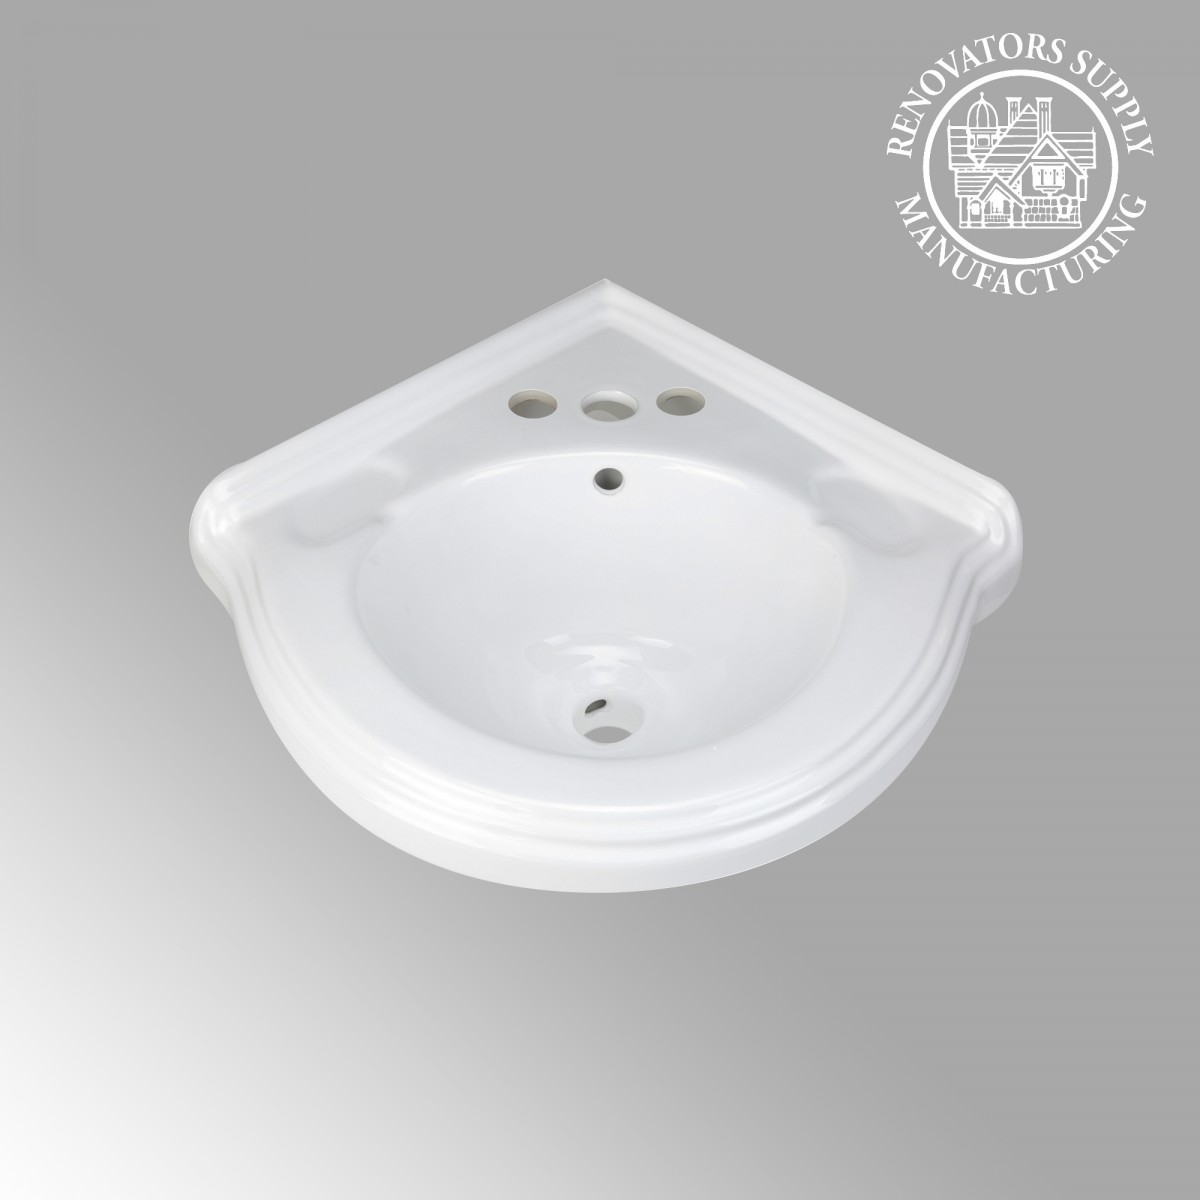 Corner wall mount small bathroom sink white ceramic for Tiny bathroom sink